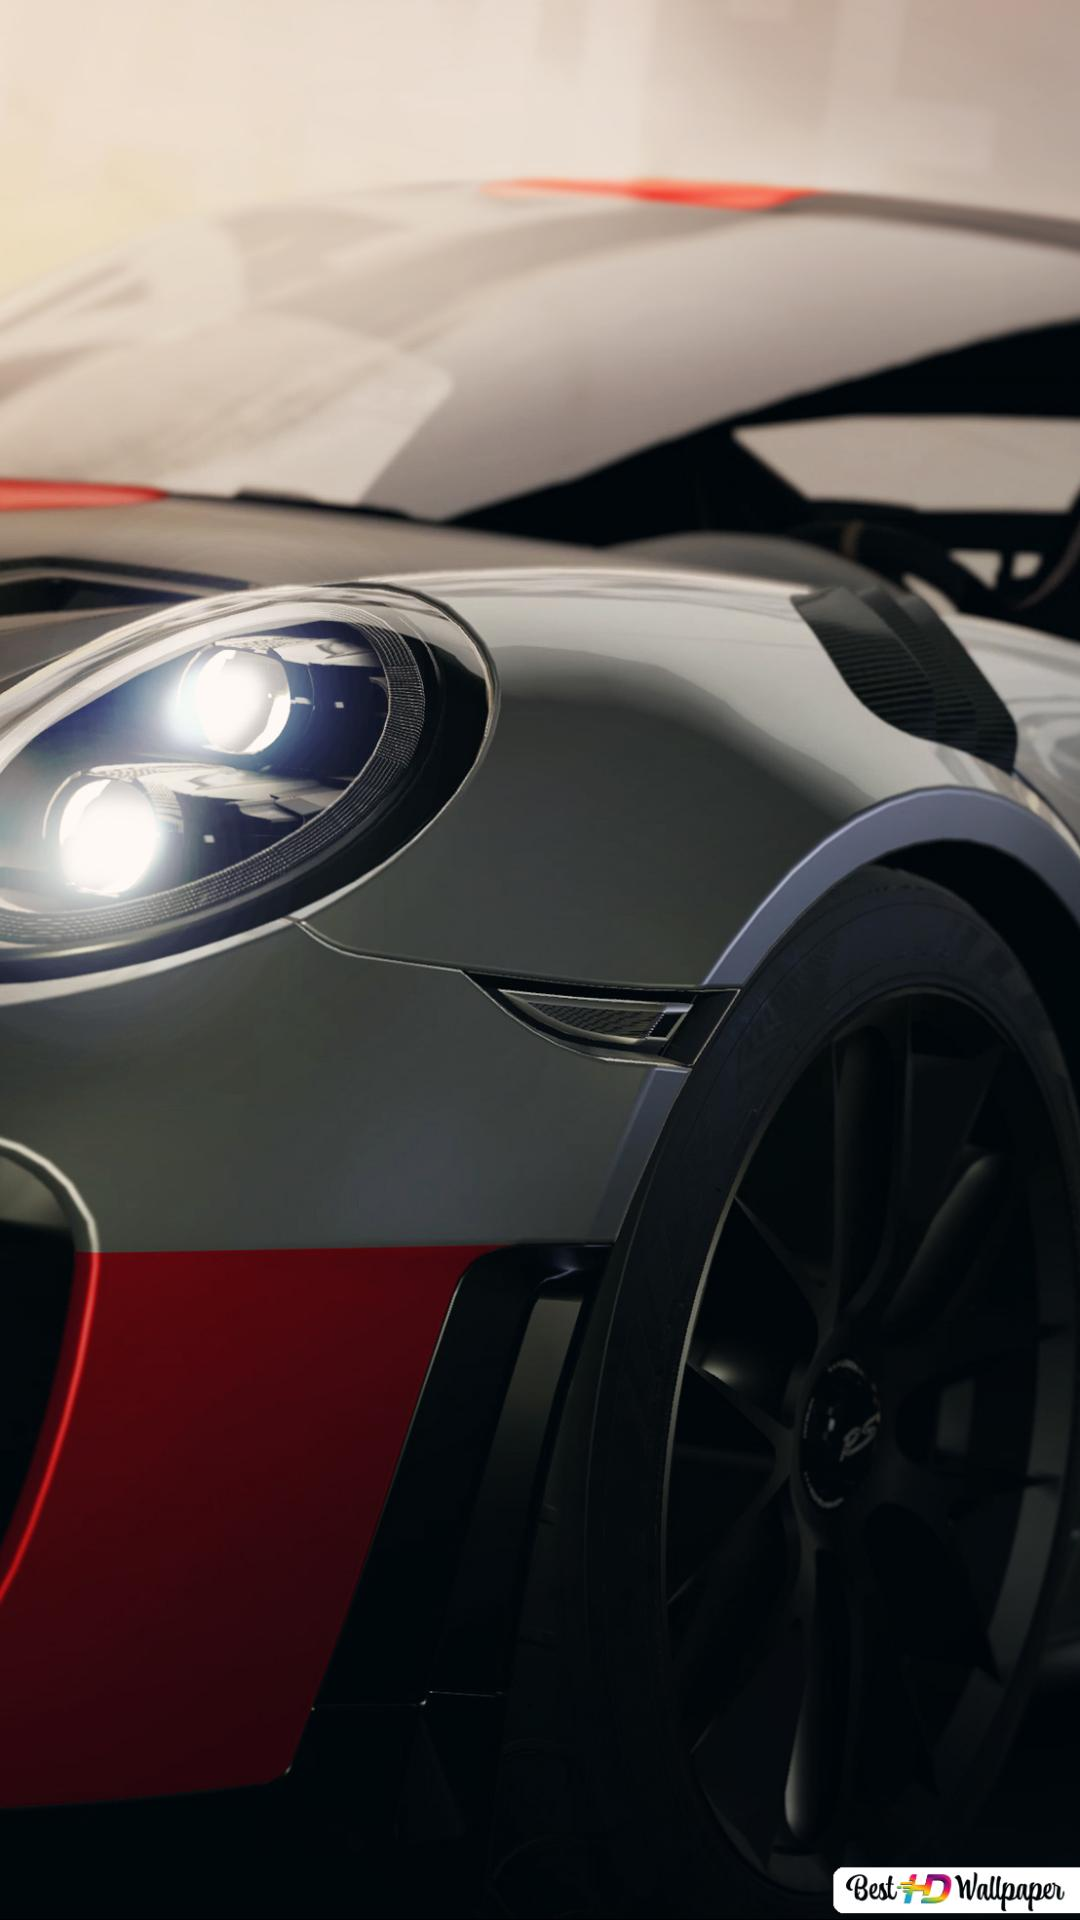 Forza Motorsport 7 Porsche 911 Gt2 Rs Hd Wallpaper Download